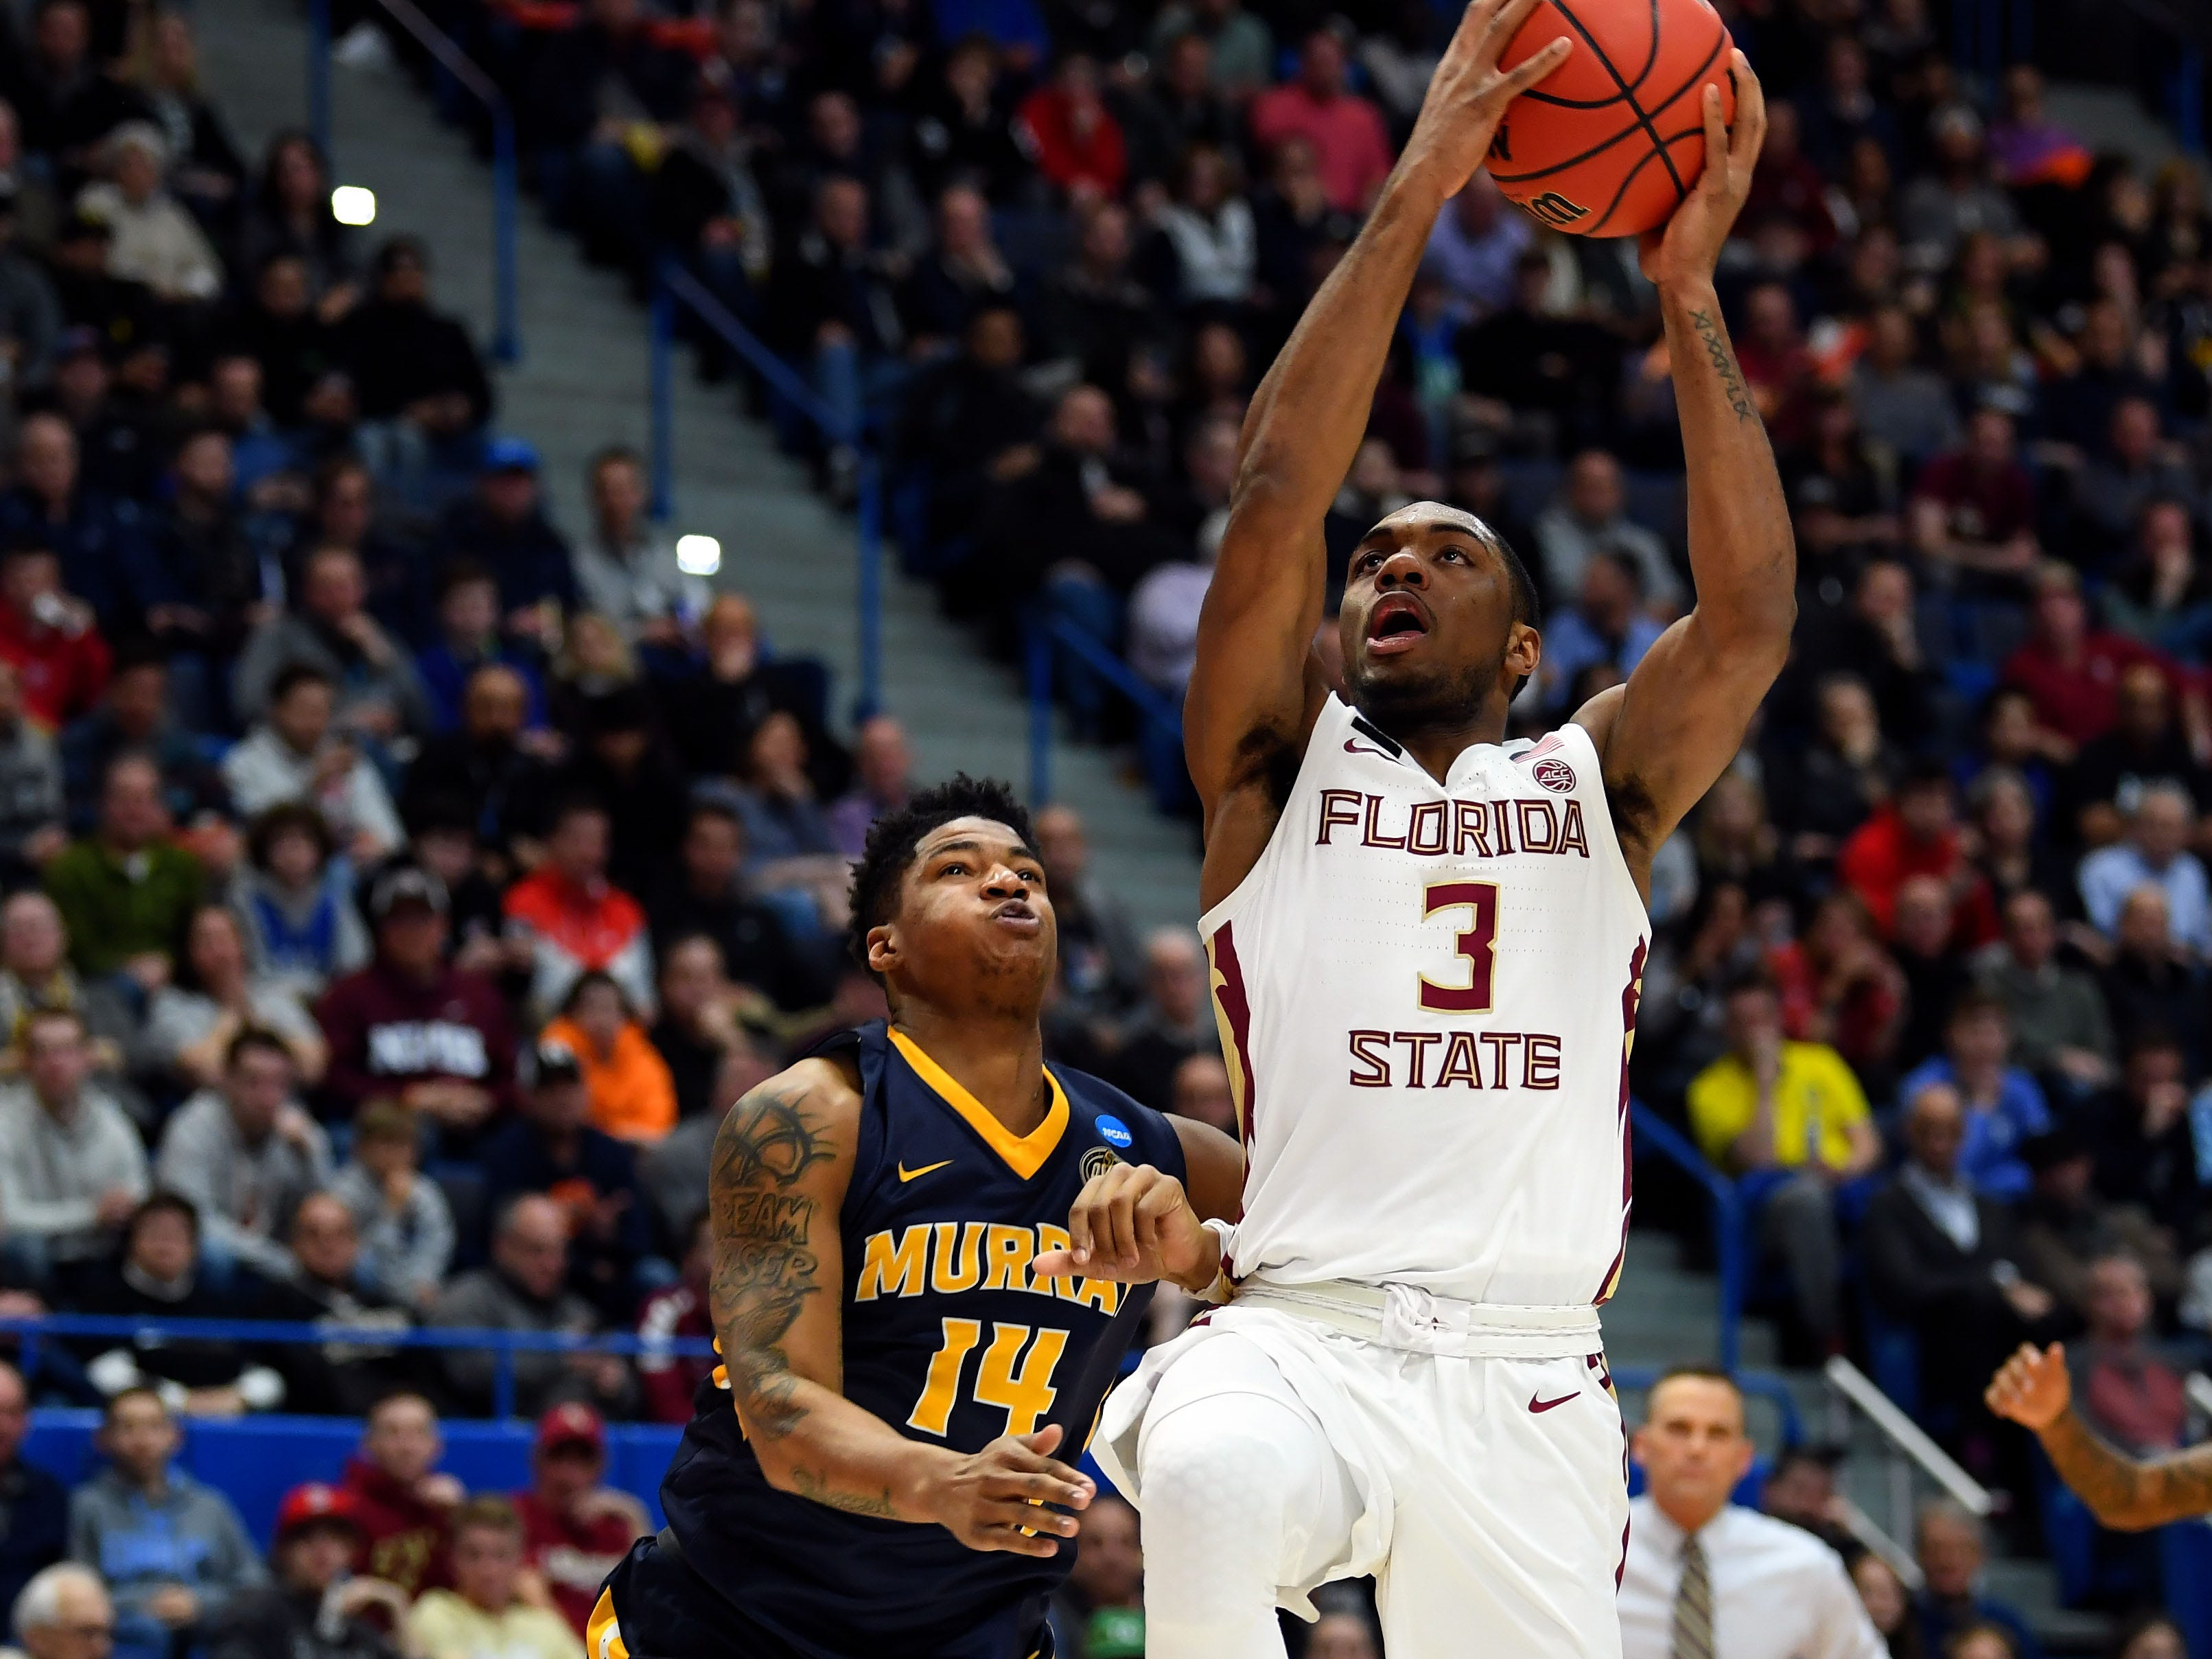 Mar 23, 2019; Hartford, CT, USA; Florida State Seminoles guard Trent Forrest (3) attempts layup against Murray State Racers guard Jaiveon Eaves (14) during the first half of a game in the second round of the 2019 NCAA Tournament at XL Center. Mandatory Credit: Robert Deutsch-USA TODAY Sports